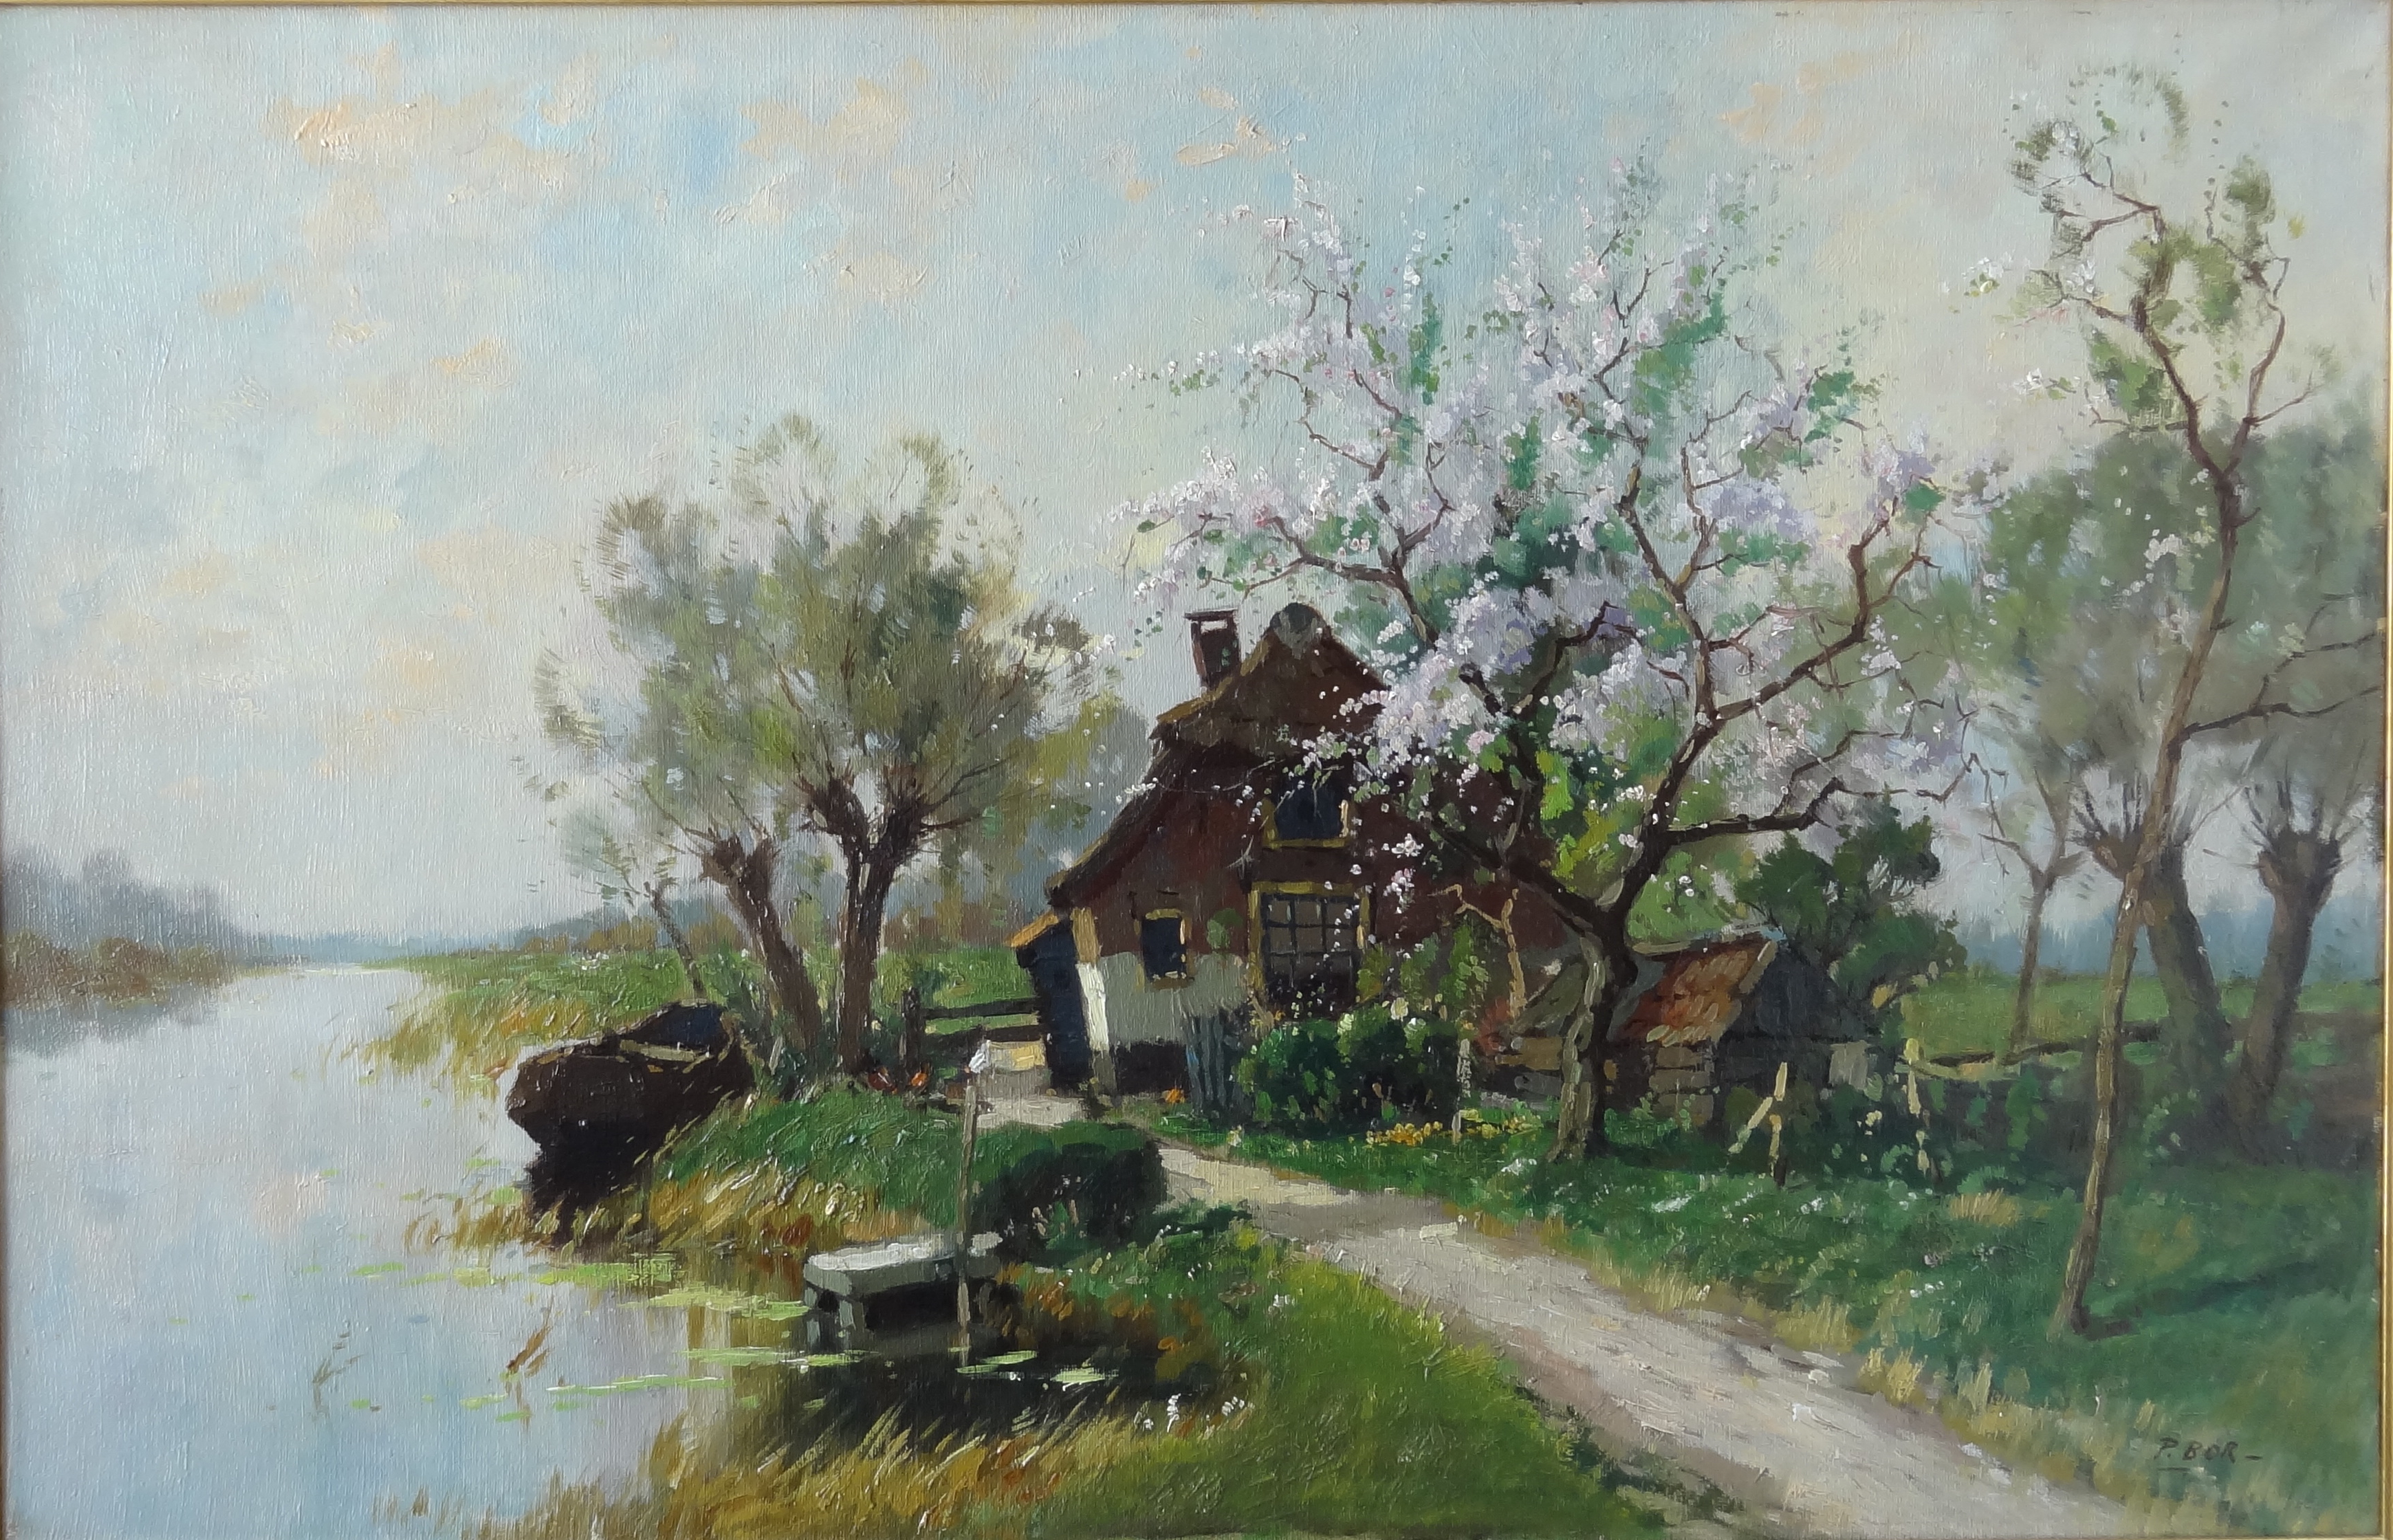 P.Bor – Dutch Landscape